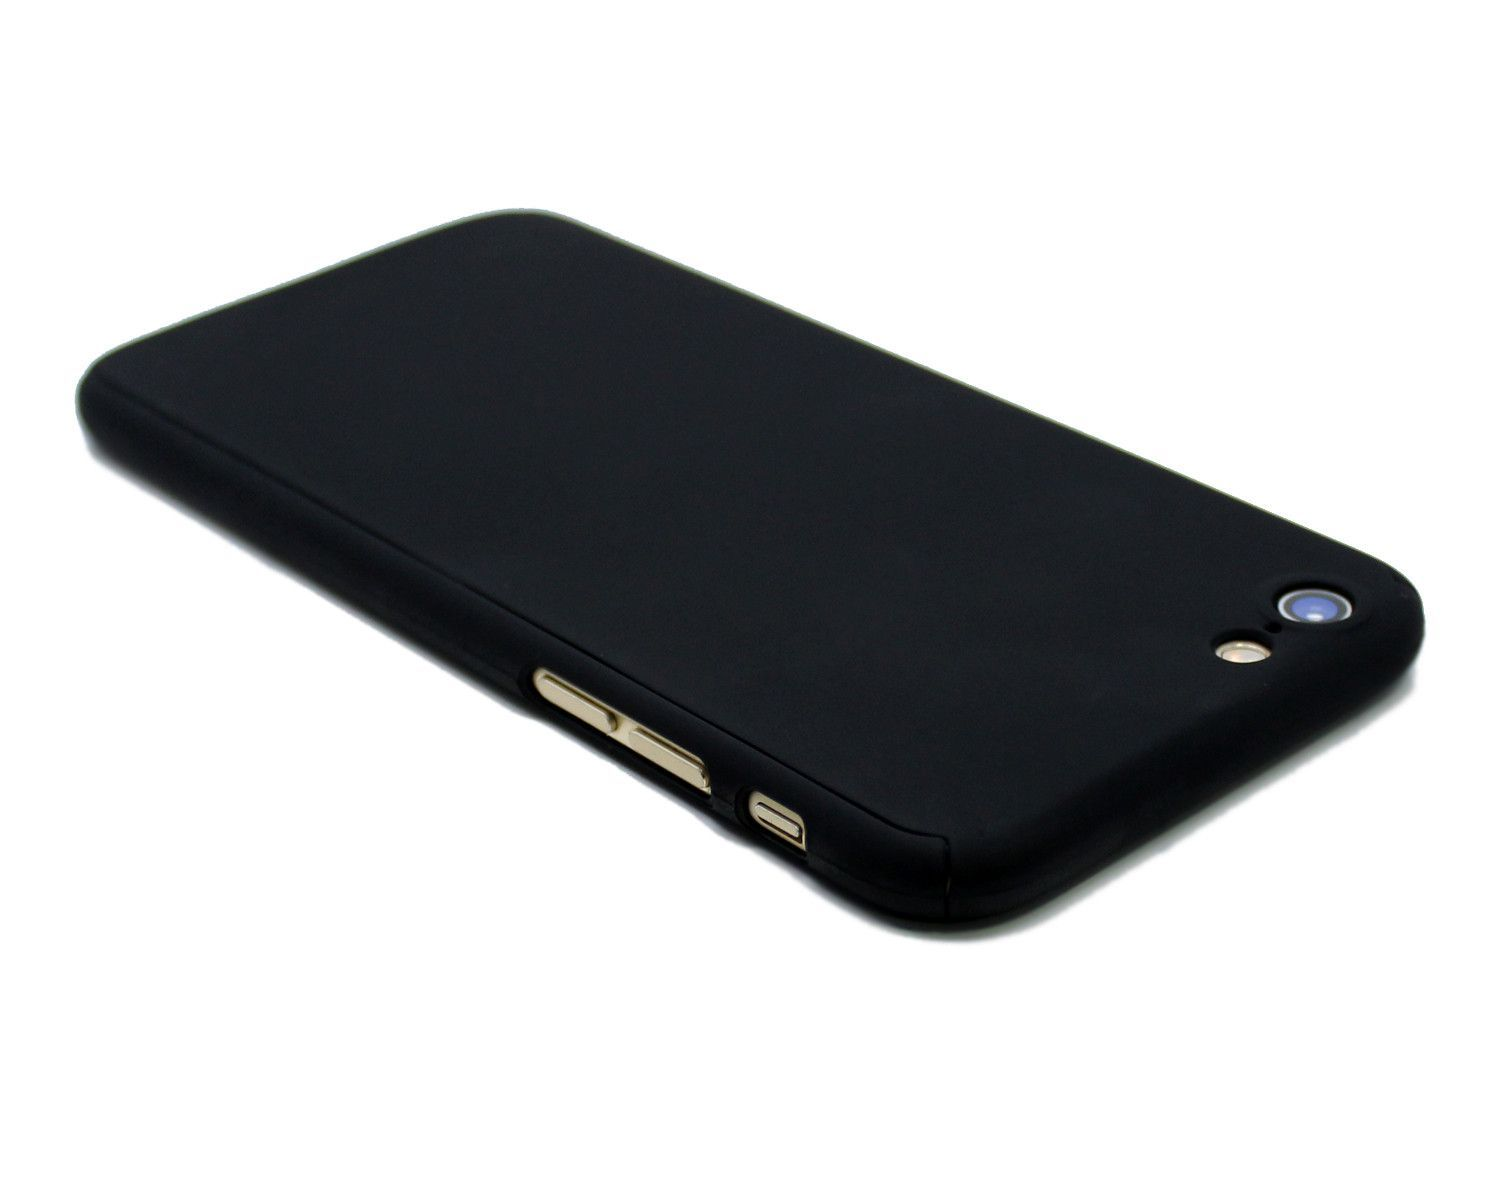 buy popular 26128 a3762 Ultra thin matte gold phone case with temper glass front. Fits ...